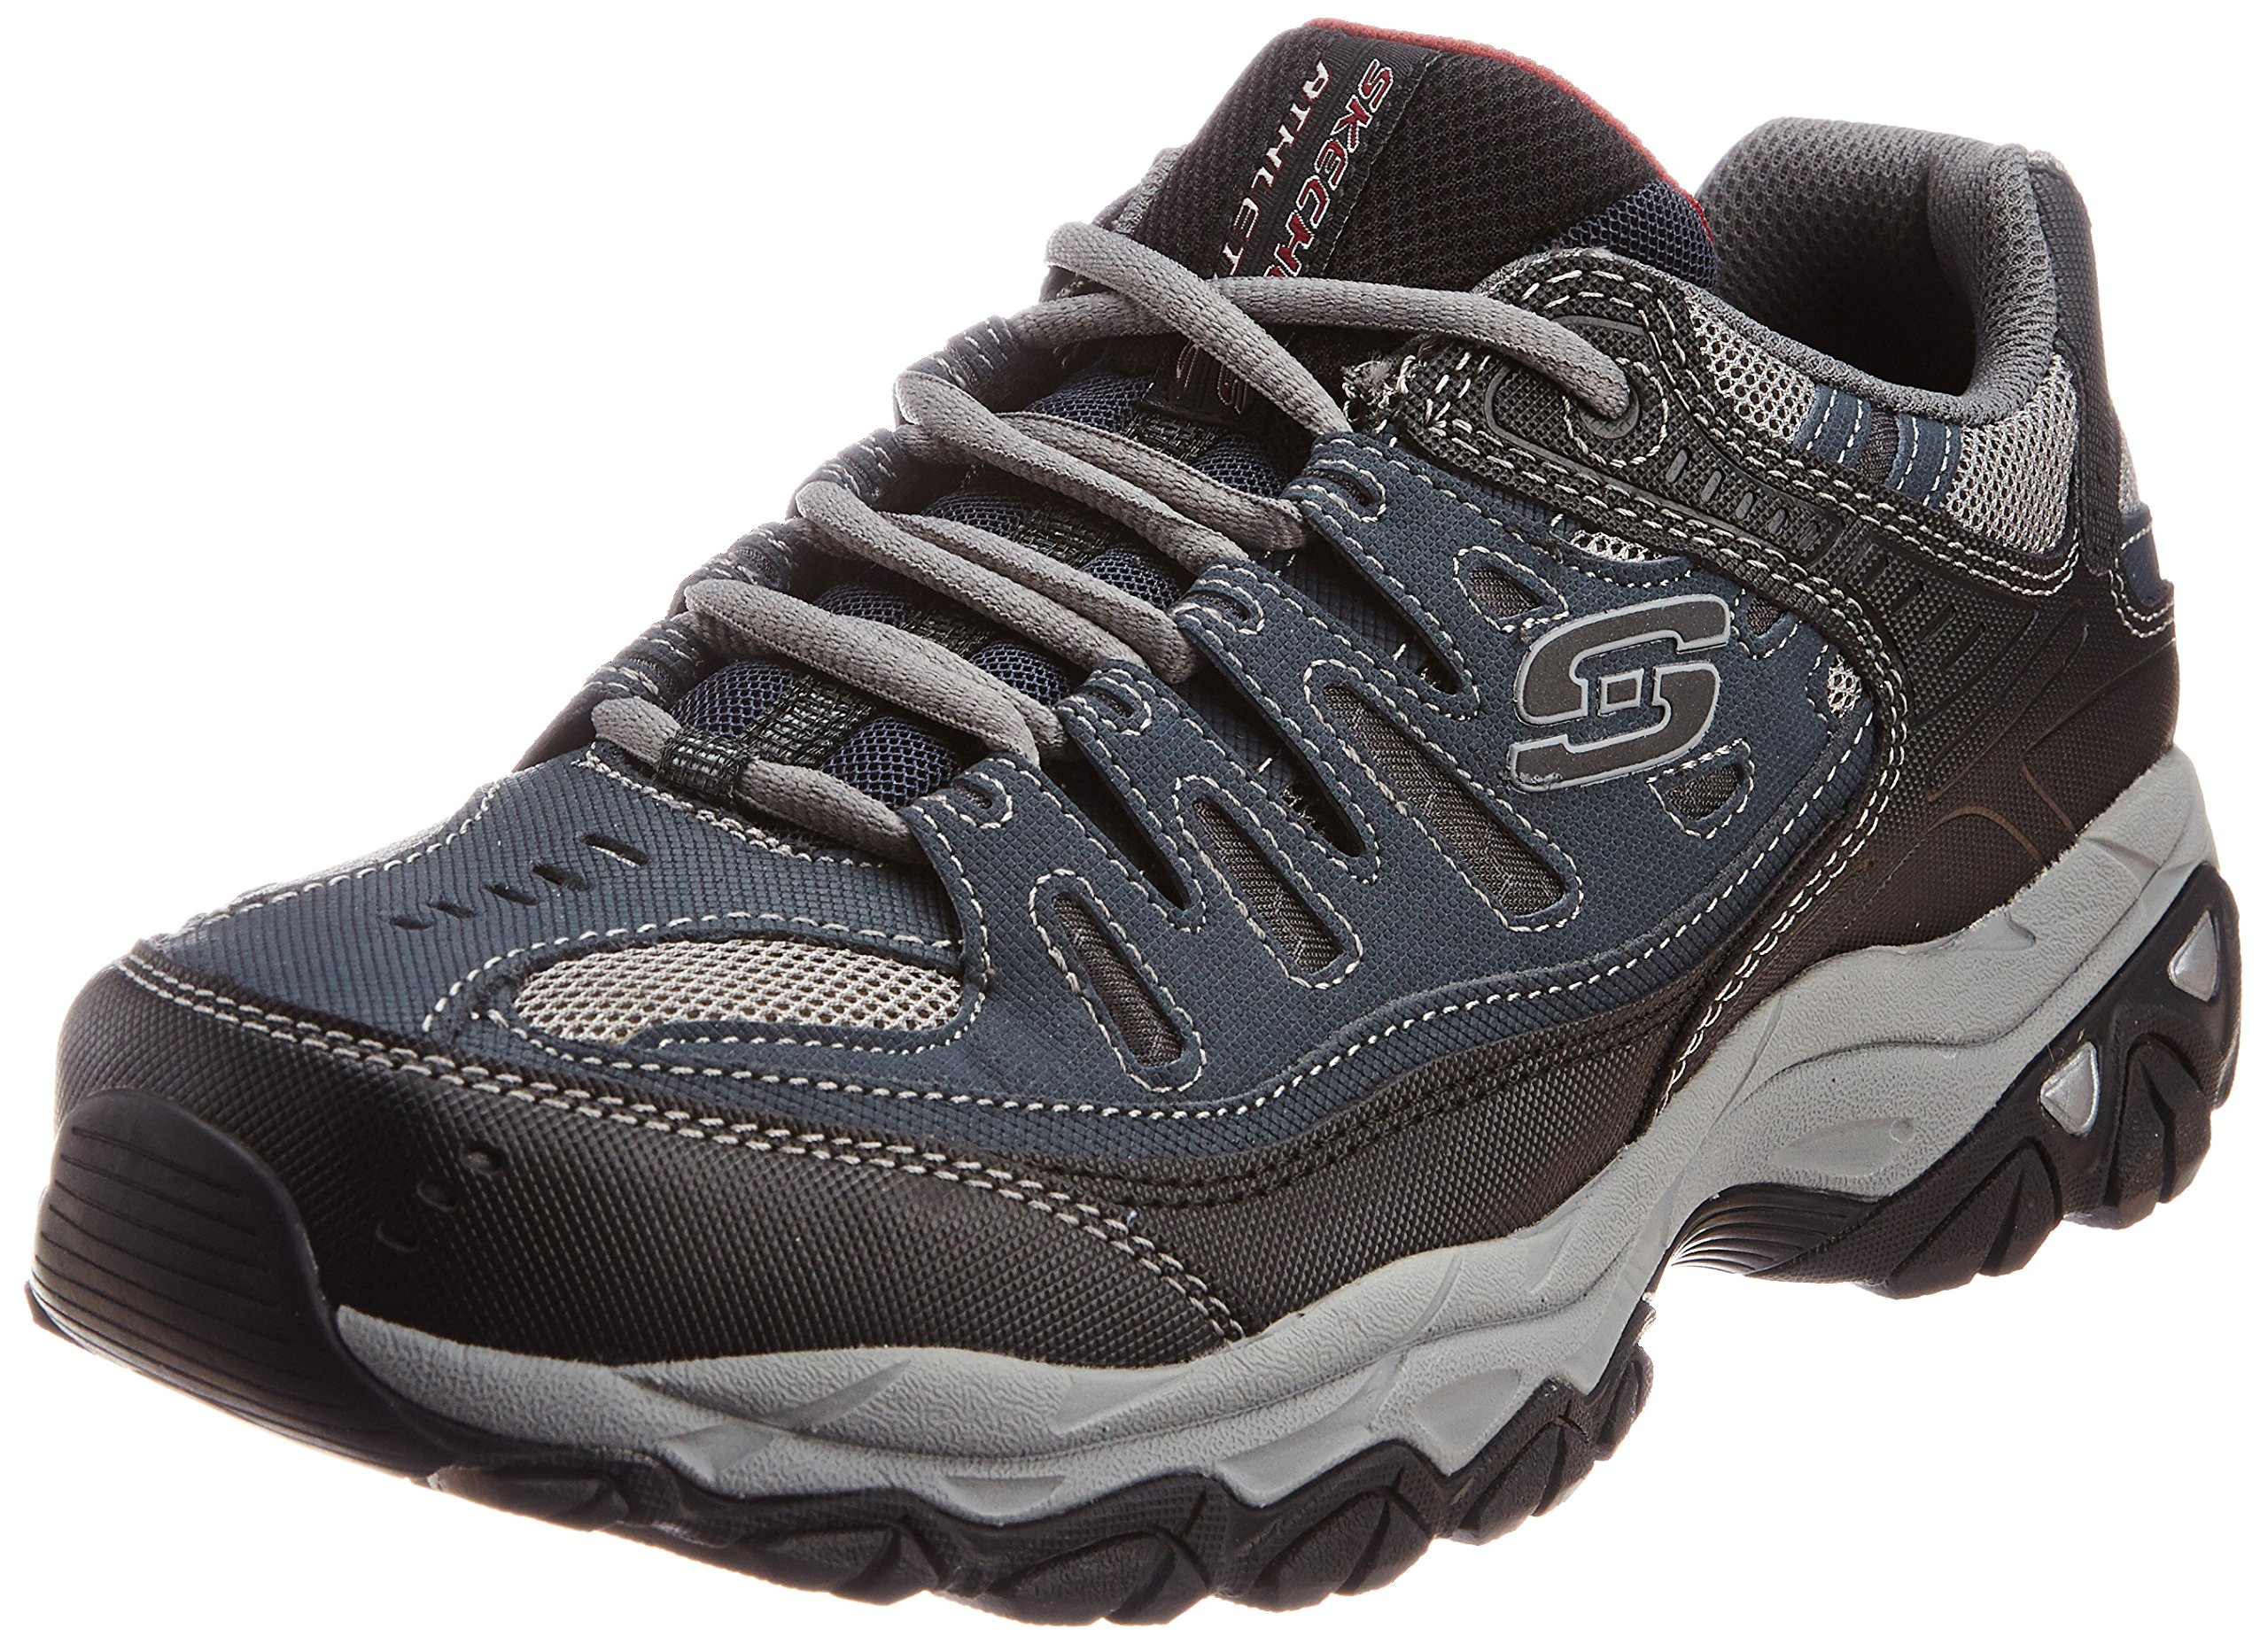 Skechers Sport Men's Afterburn Memory Foam Lace-Up Sneaker, Navy, 11 M US